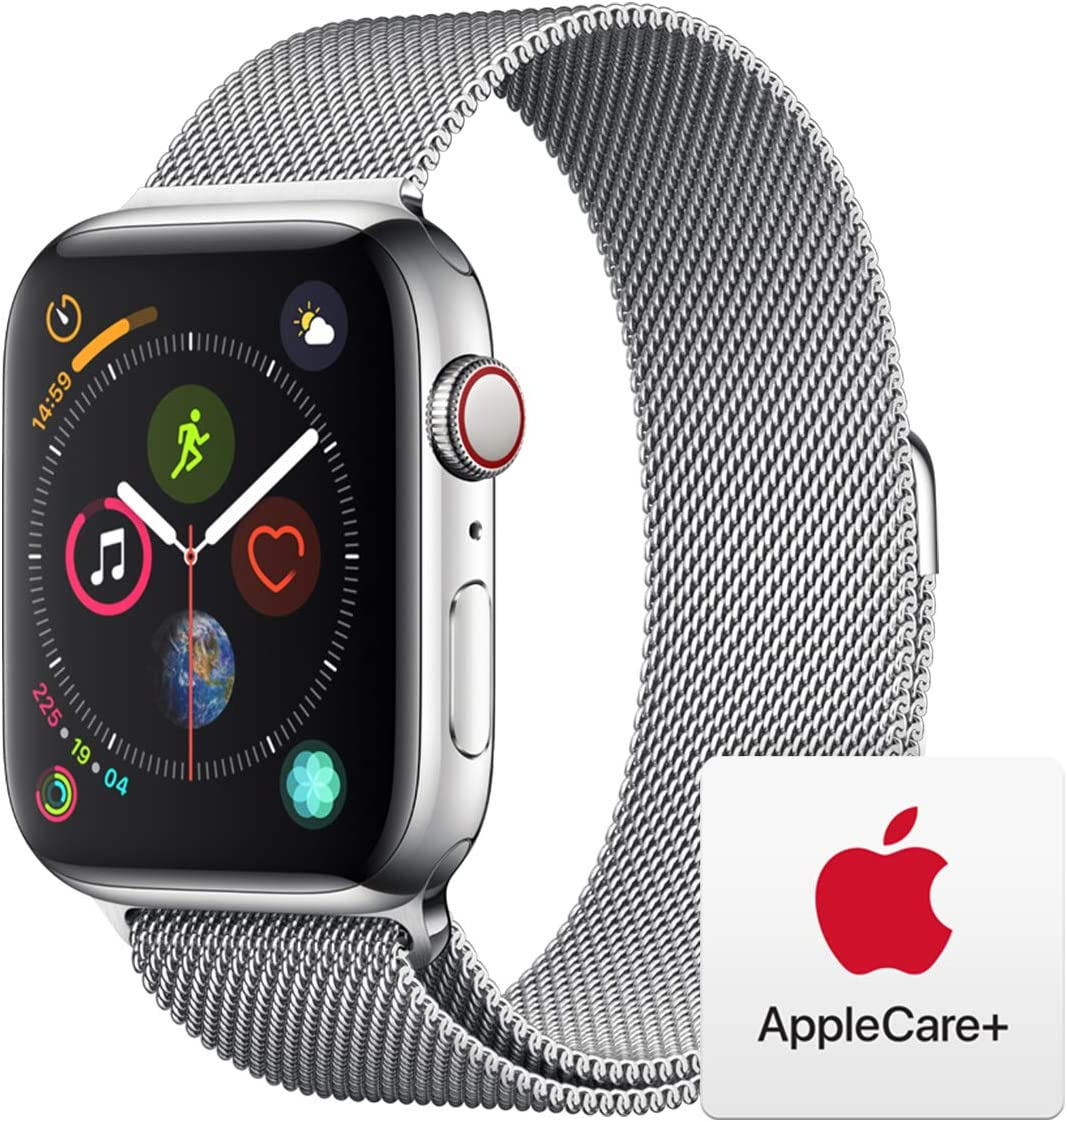 Apple Watch Series 4 (GPS + Cellular, 44mm) - Stainless Steel Case with Milanese Loop with AppleCare+ Bundle